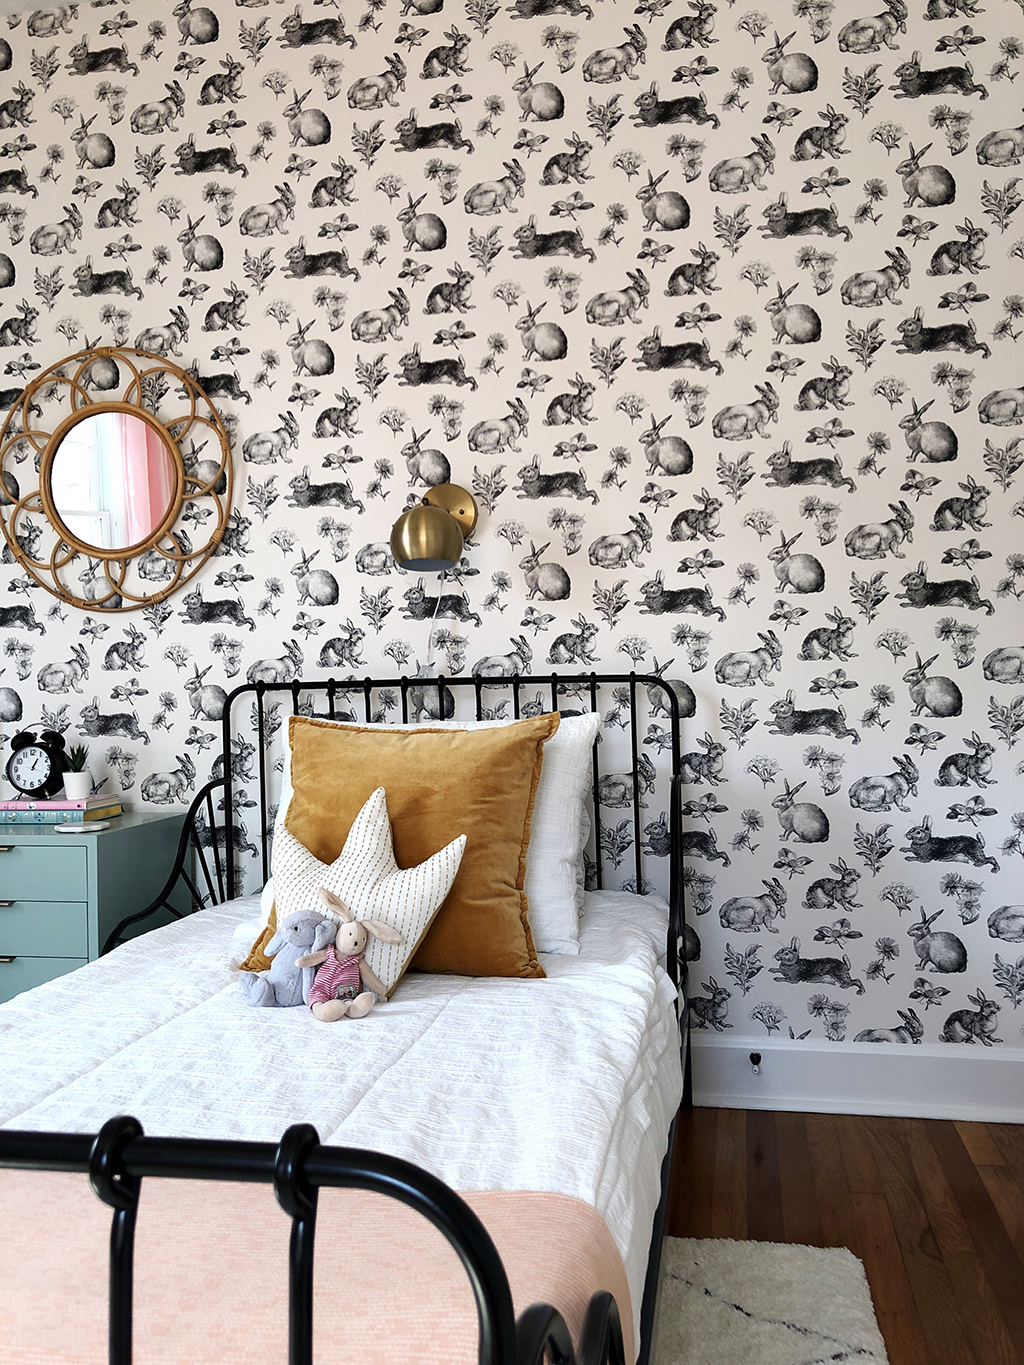 twin bed with white bedding and rabbit wallpaper